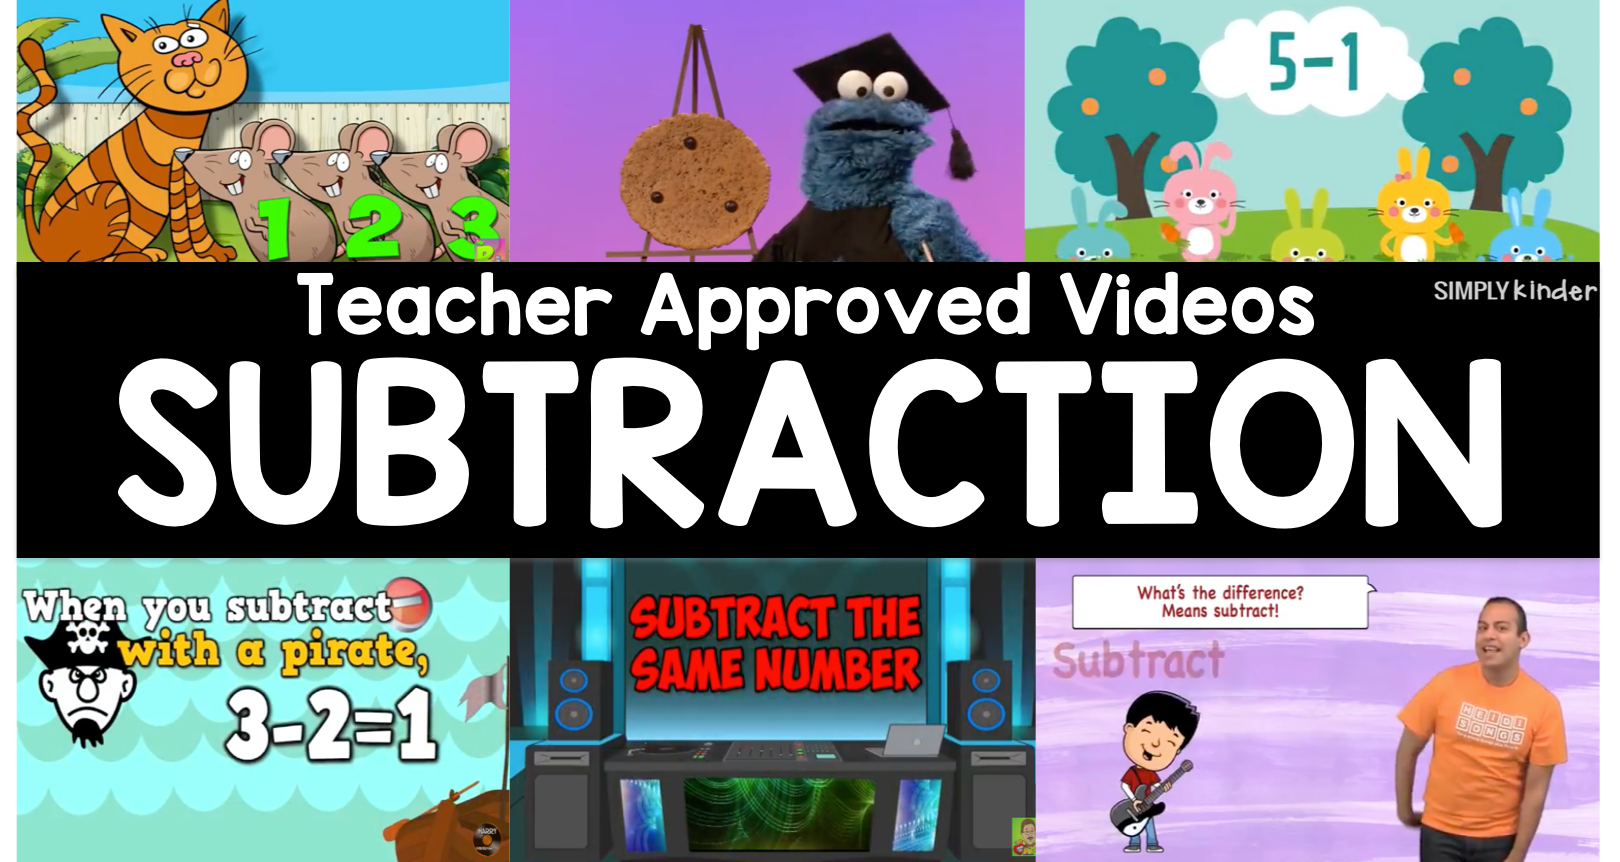 Teacher Approved Subtraction Videos